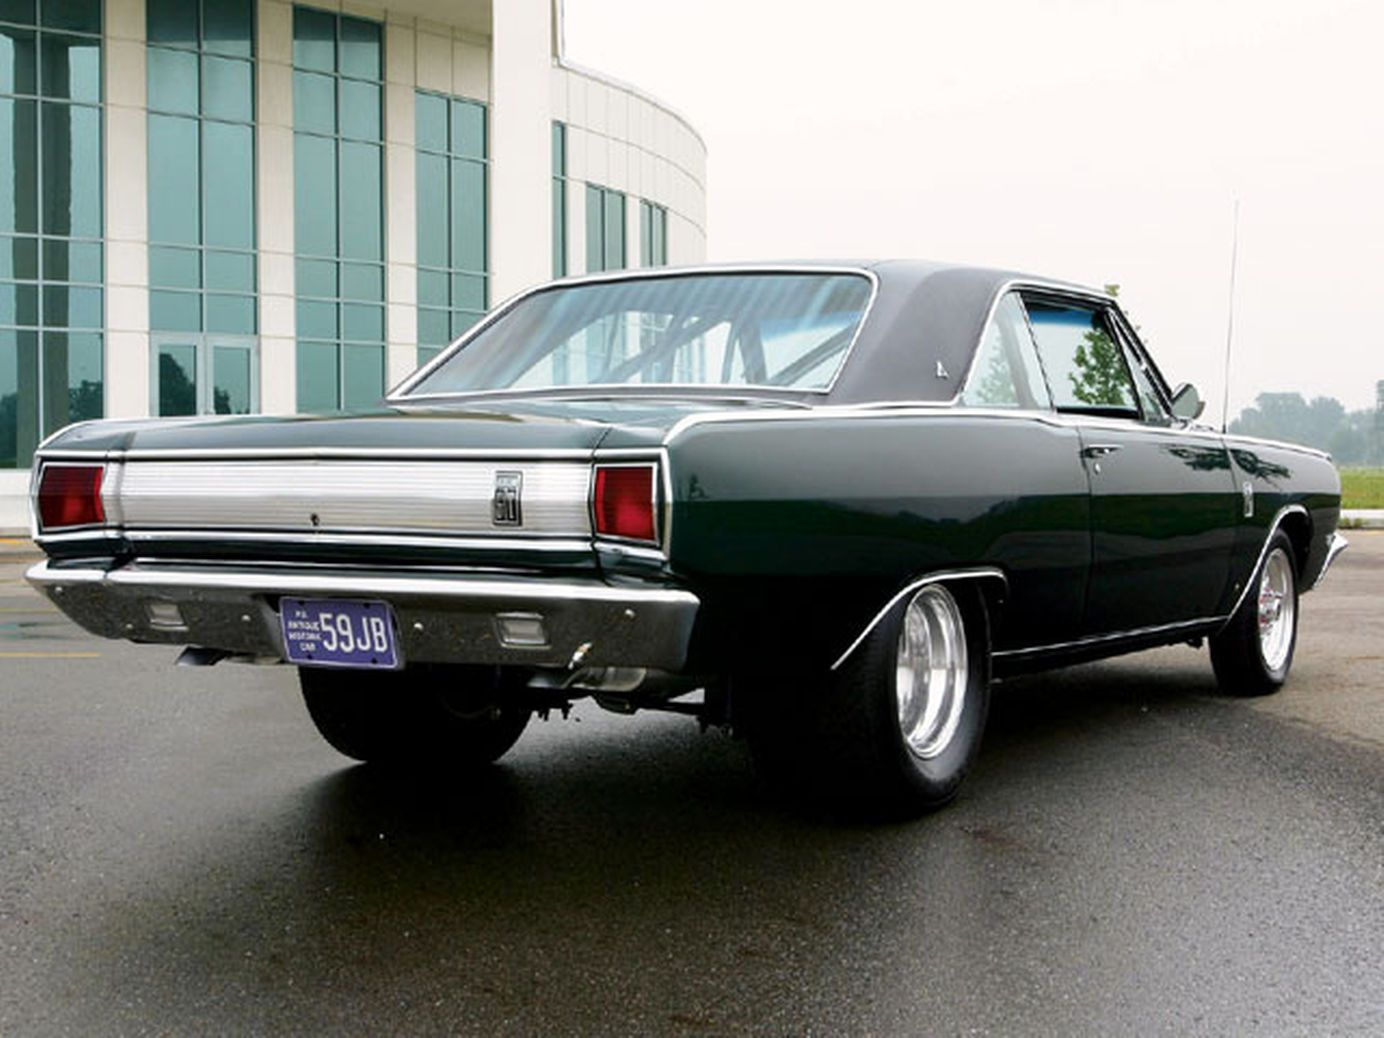 Take A Look At This 833 Four Sd Manual Transmission 1967 Dodge Dart Gt From Mopar Muscle Magazine